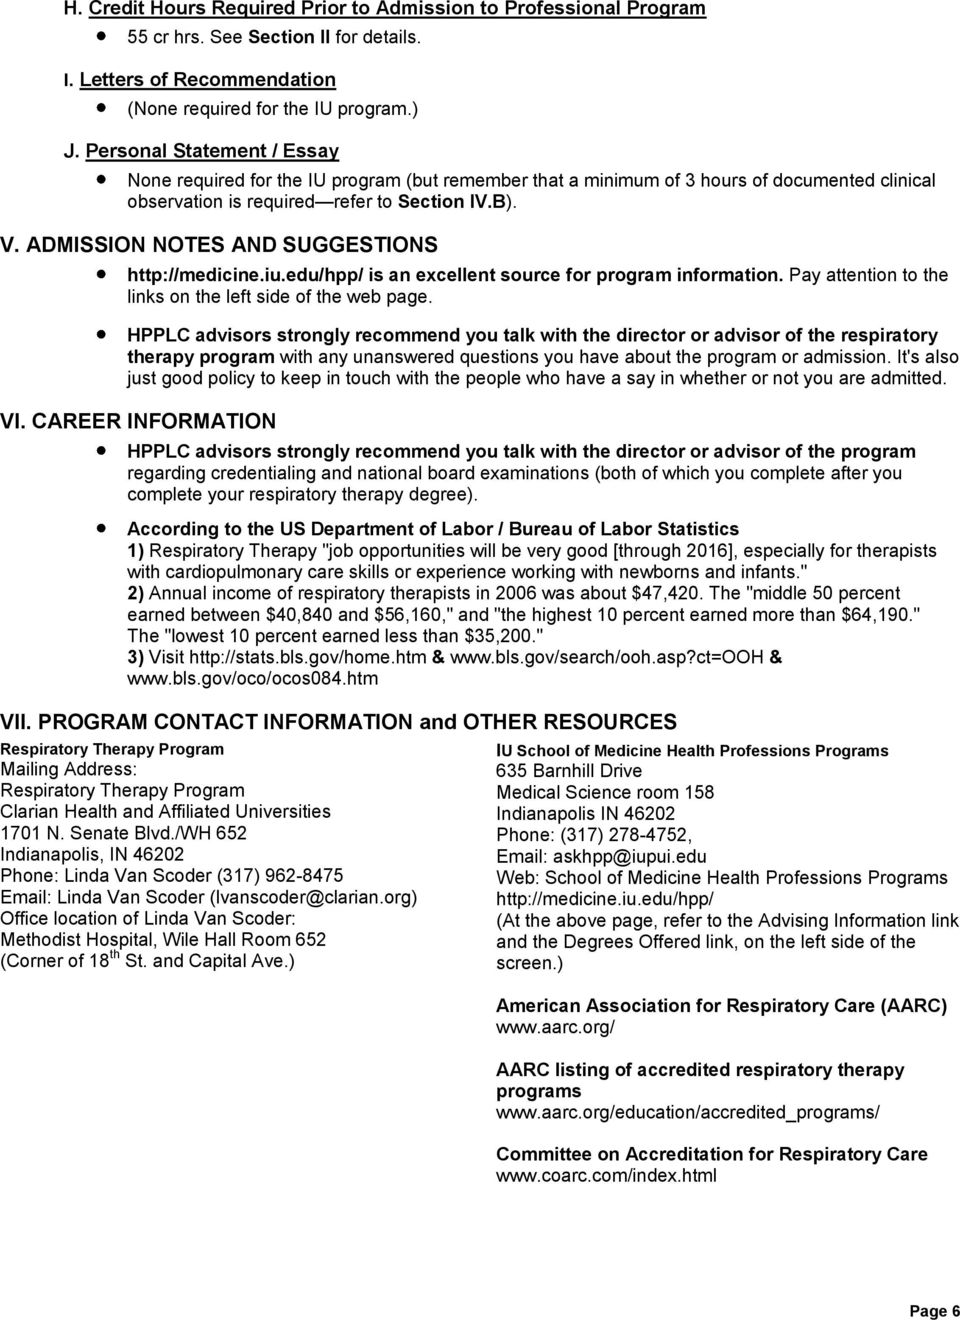 ADMISSION NOTES AND SUGGESTIONS http://medicine.iu.edu/hpp/ is an excellent source for program information. Pay attention to the links on the left side of the web page.